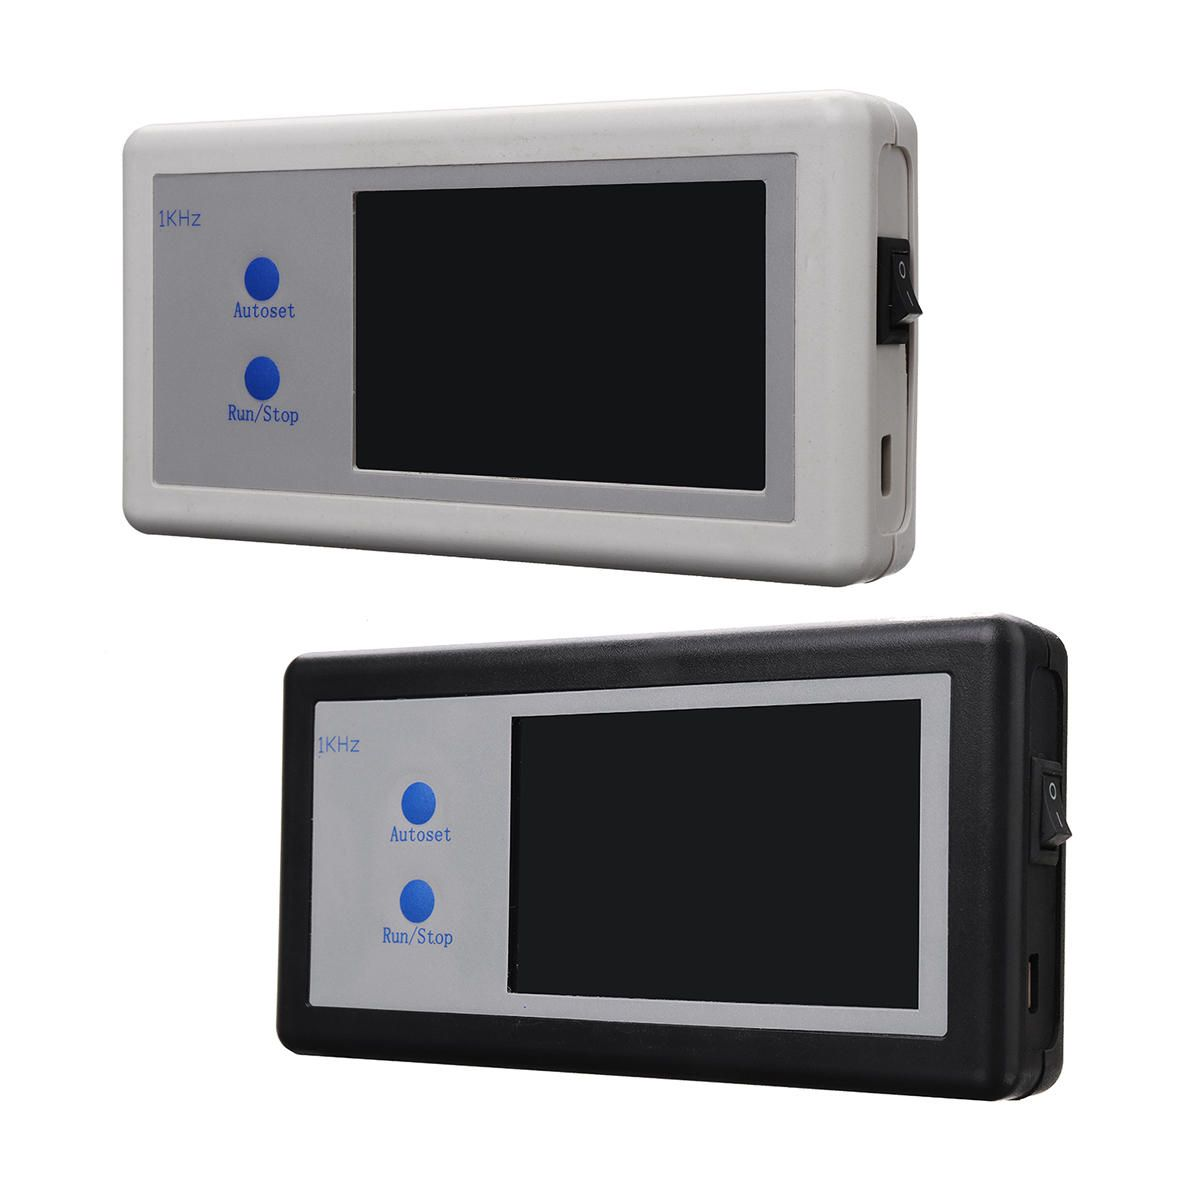 [US$68.99] D602 200KHz 2 Channel Oscilloscope Mini Pocket-Sized Handheld Touch Panel LCD Digital Oscilloscope  #200khz #channel #d602 #digital #handheld #mini #oscilloscope #panel #pocketsized #touch #touchpanel